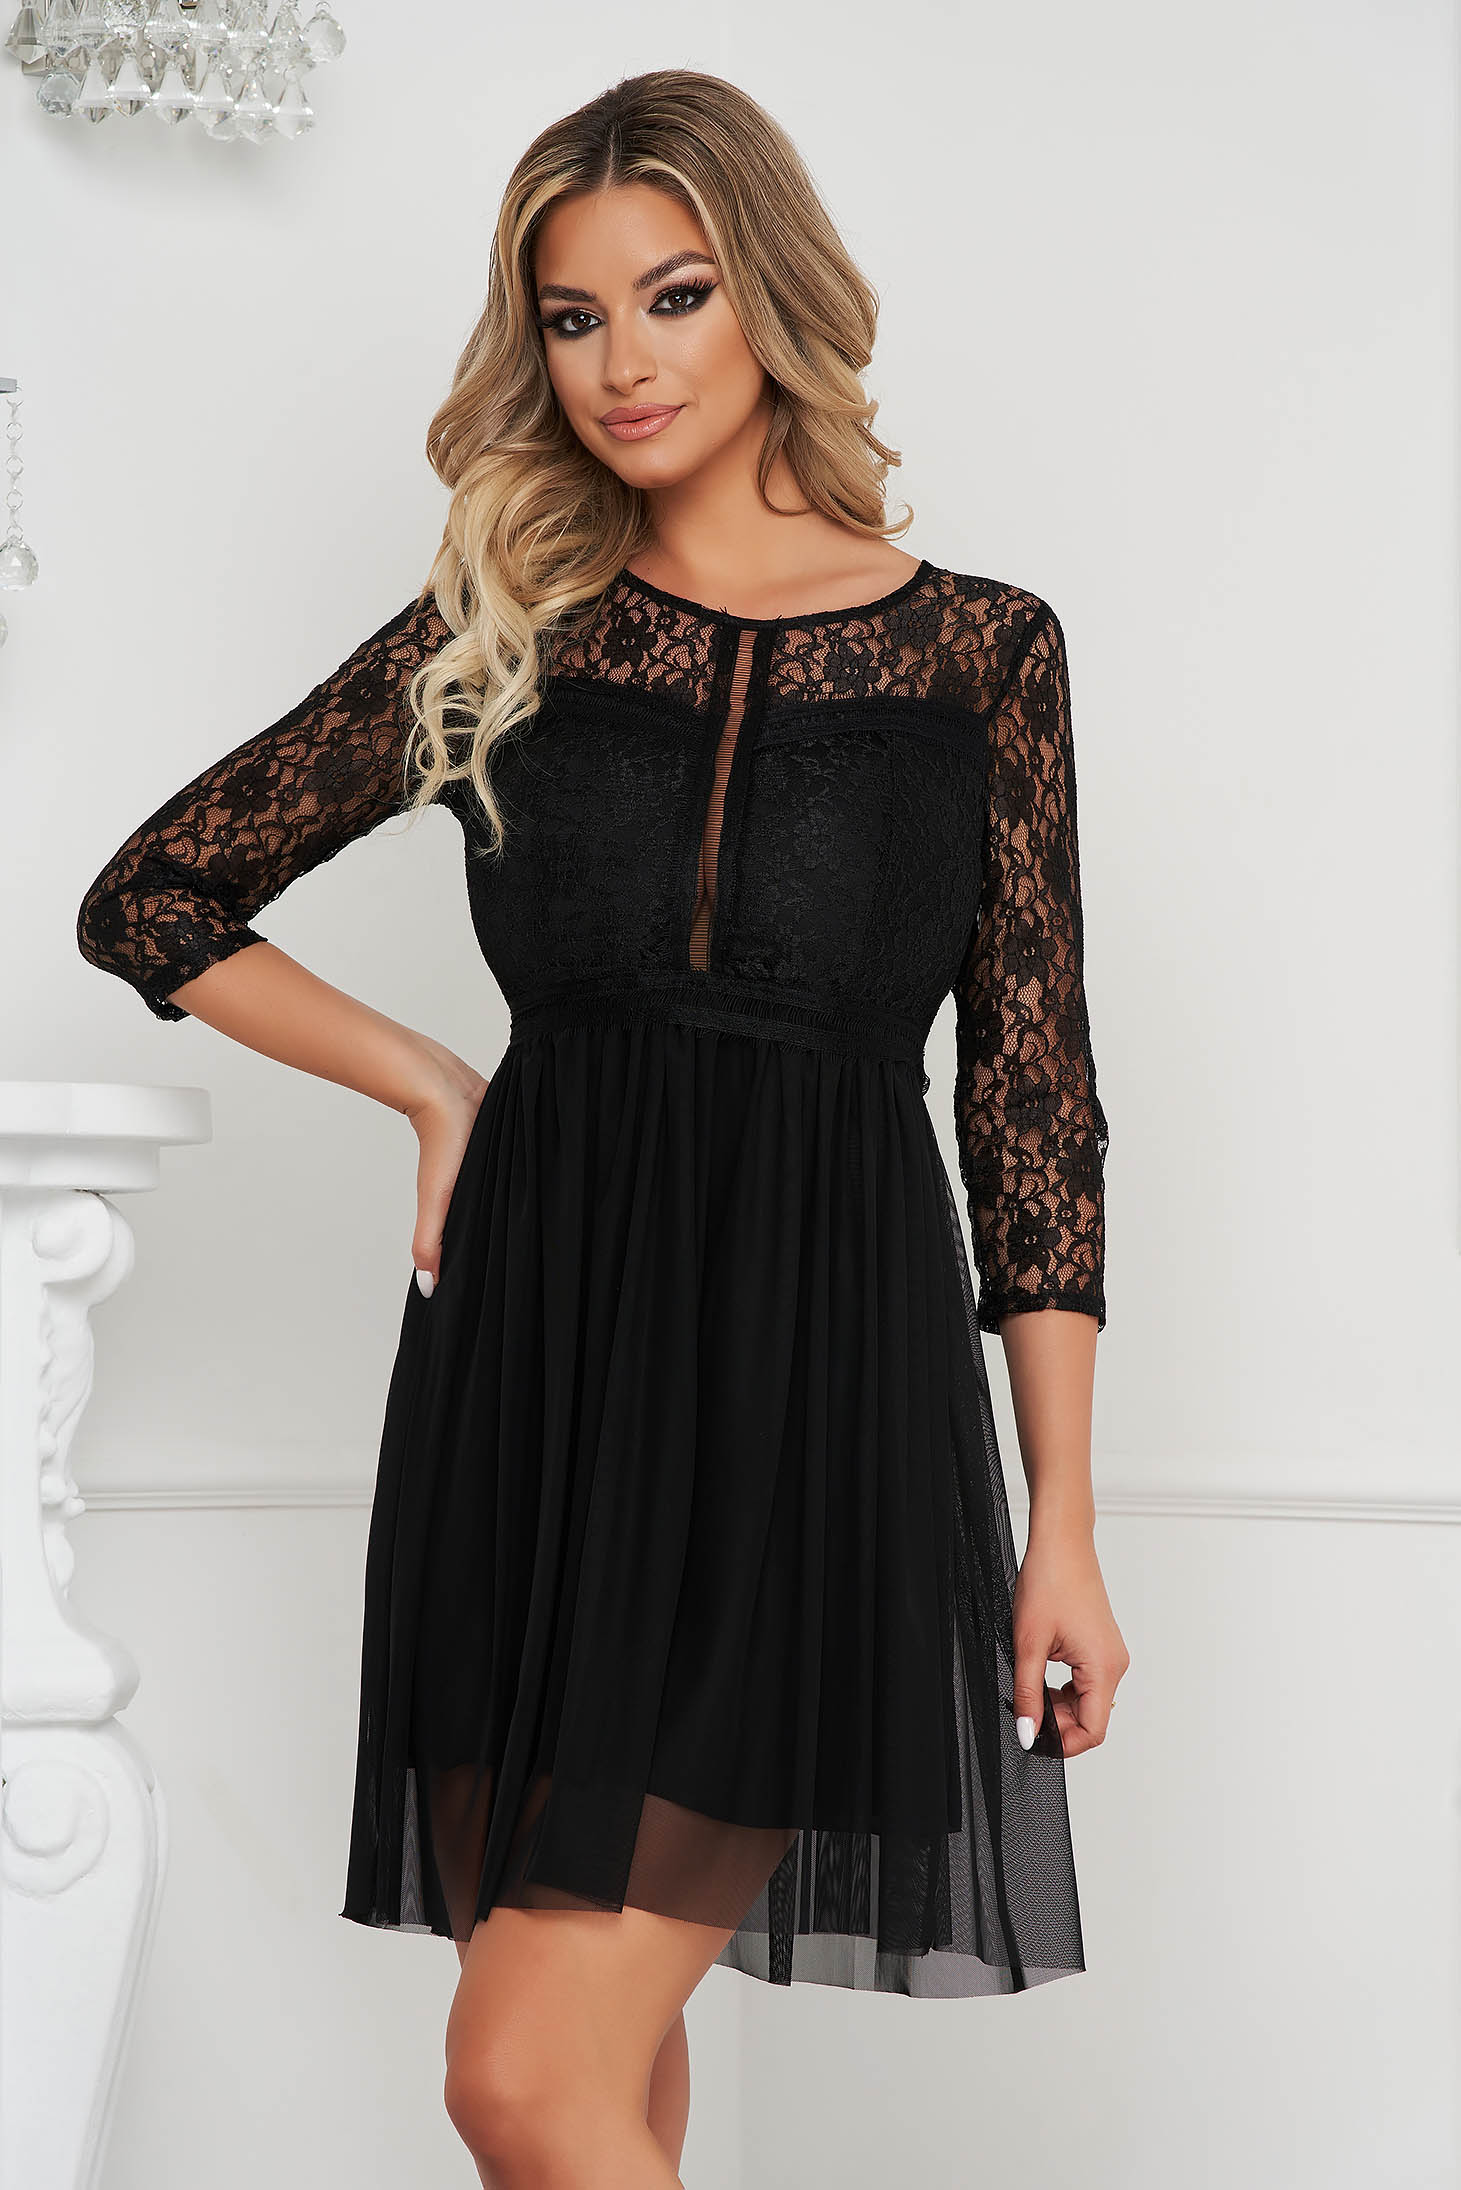 Black dress short cut occasional cloche laced from tulle